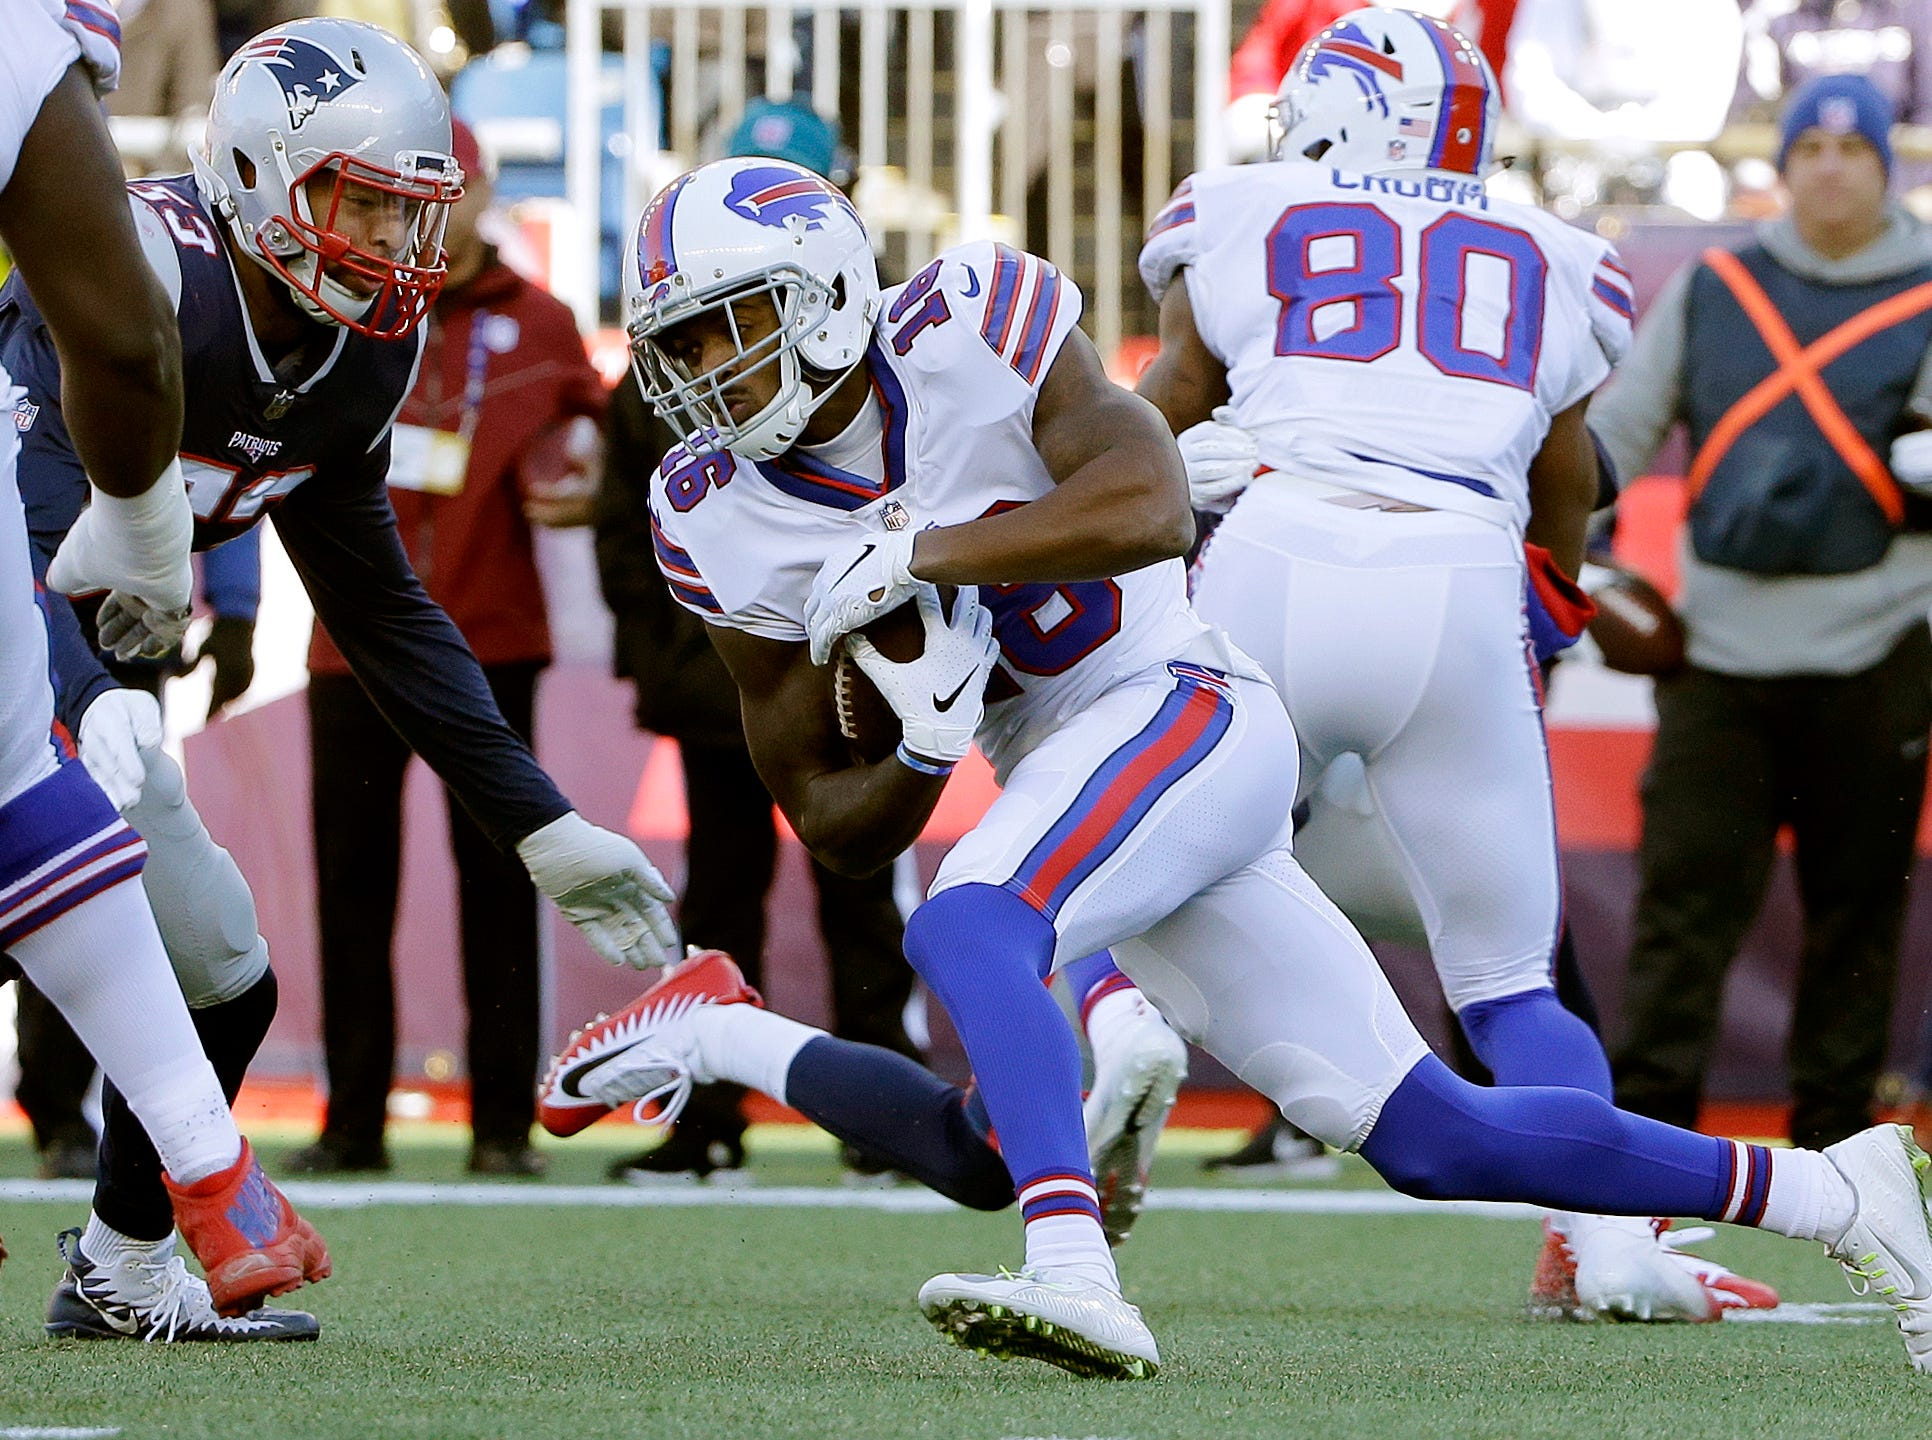 New England Patriots linebacker Kyle Van Noy, left, closes in to tackle Buffalo Bills wide receiver Robert Foster during the first half of an NFL football game, Sunday, Dec. 23, 2018, in Foxborough, Mass. (AP Photo/Steven Senne)